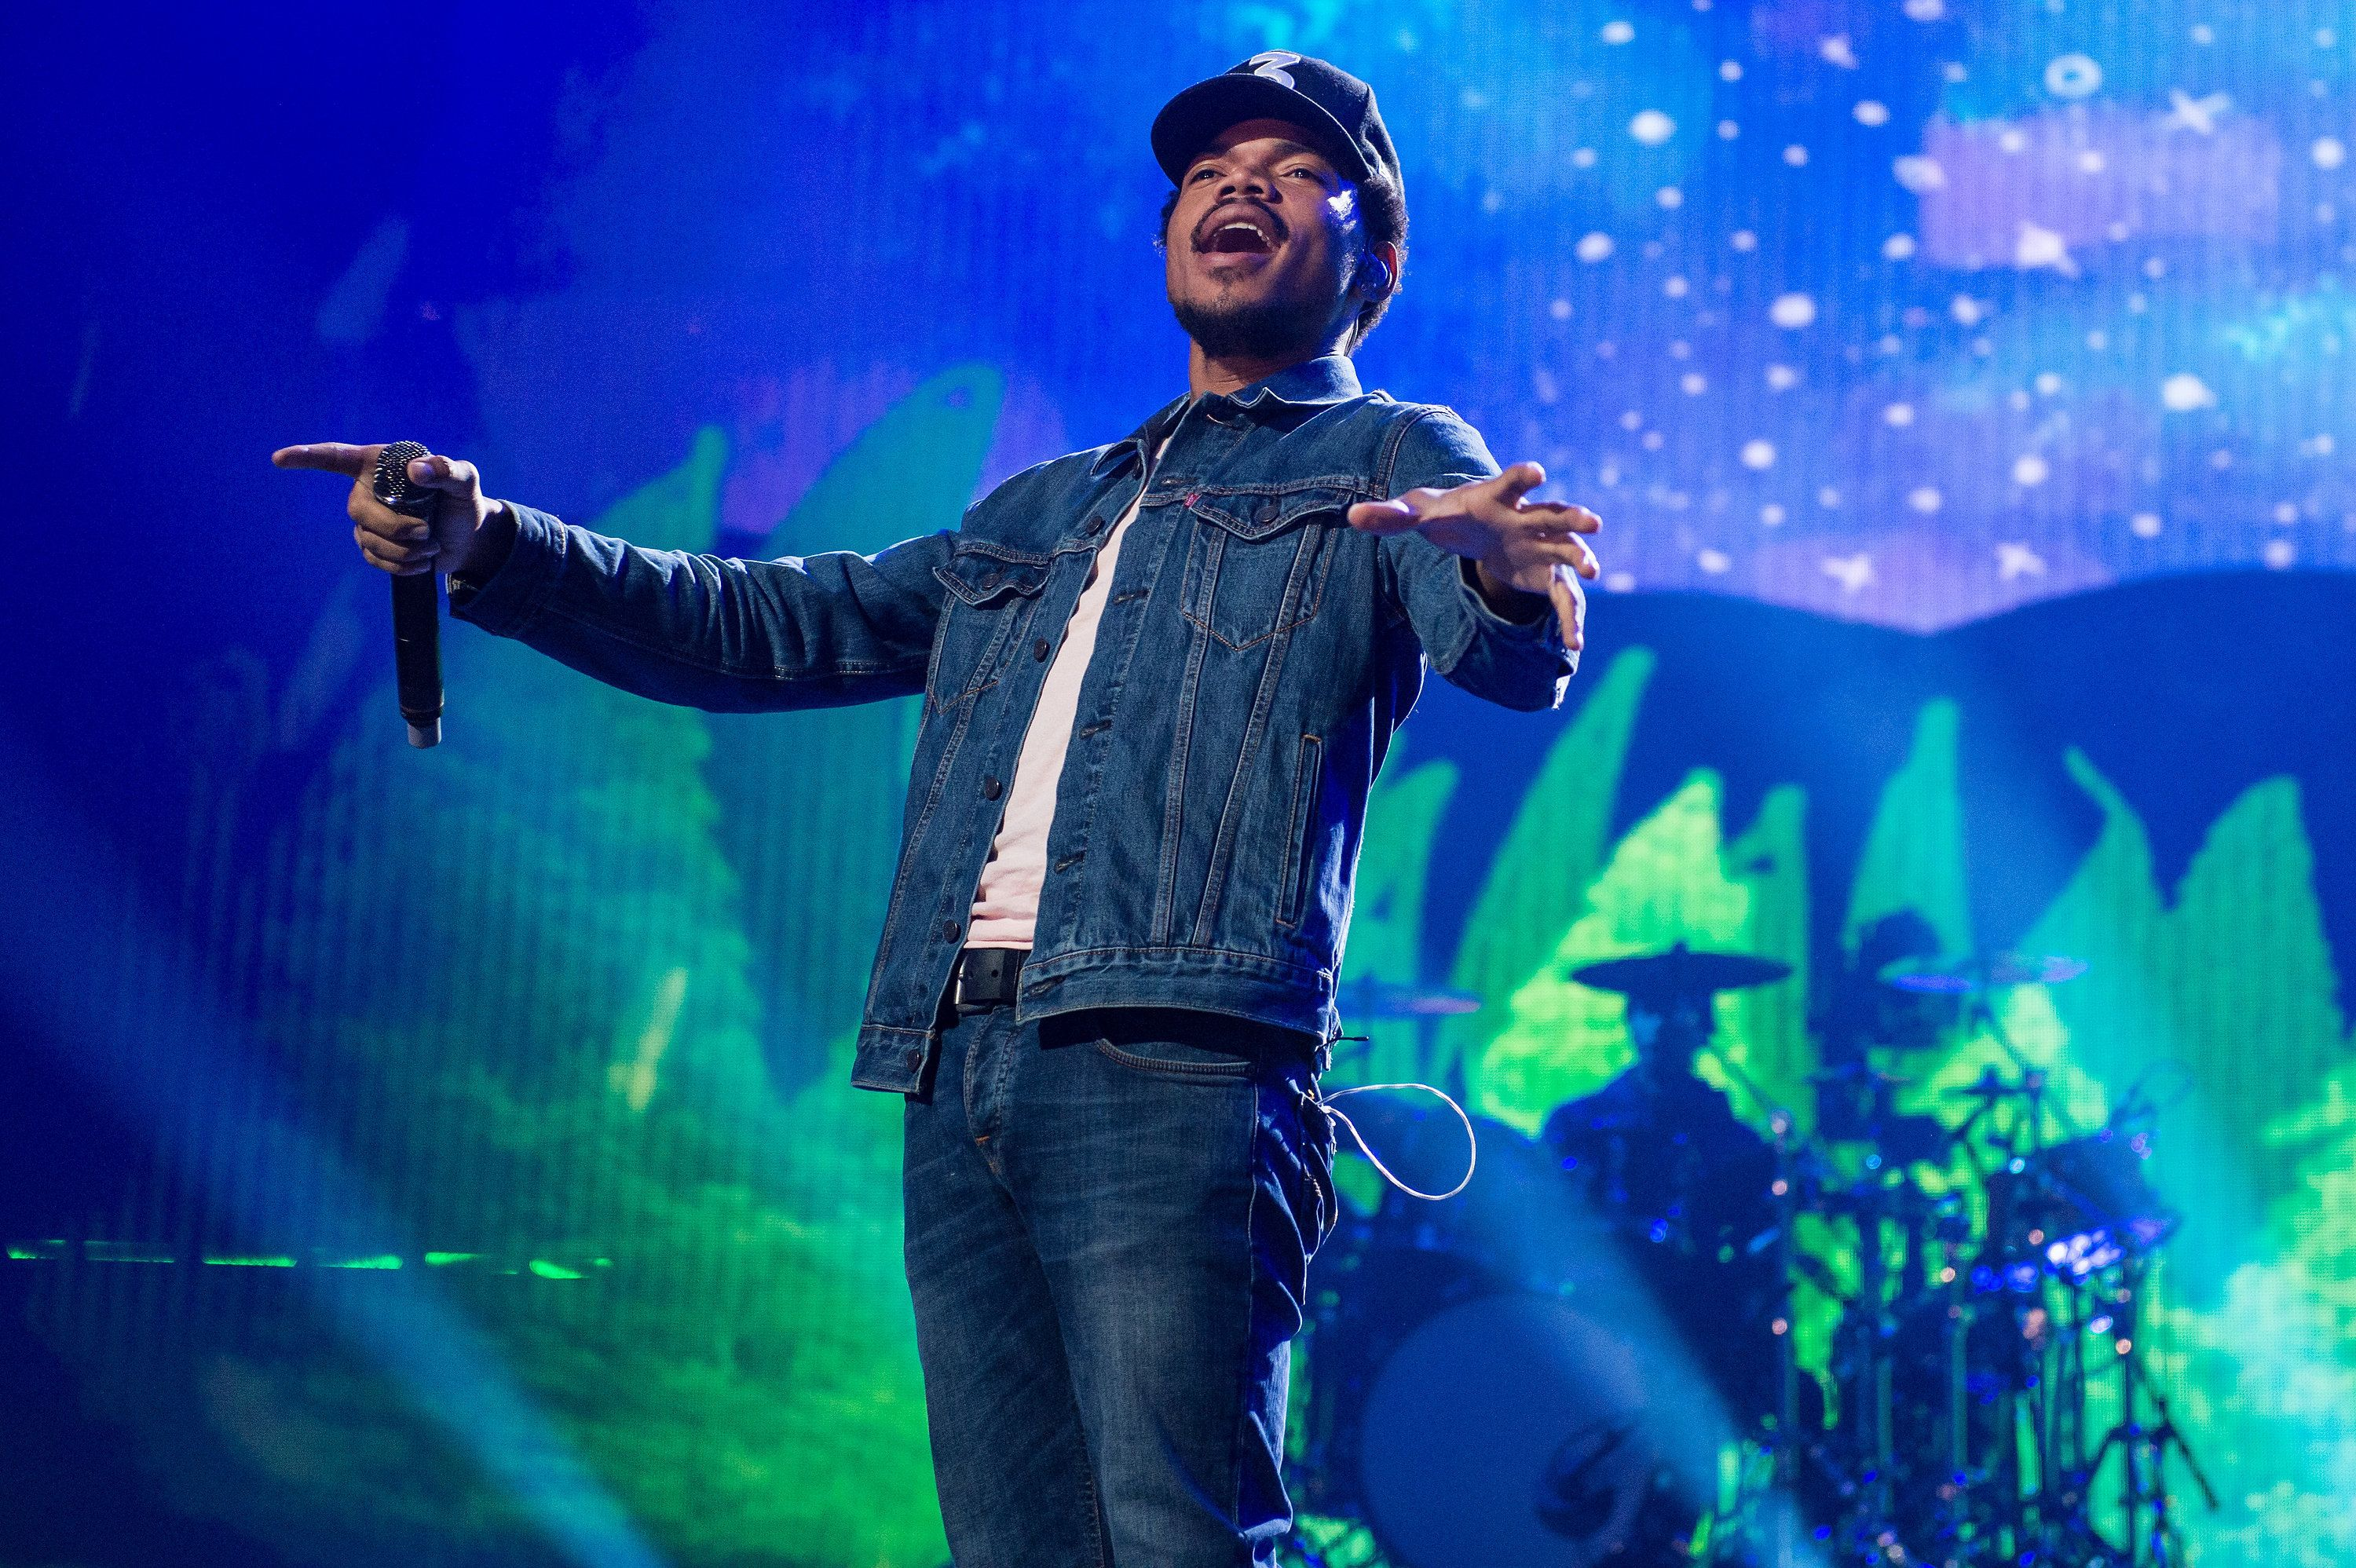 LONDON, ENGLAND - SEPTEMBER 30:  Chance The Rapper performs at the Apple Music Festival at The Roundhouse on September 30, 2016 in London, England.  (Photo by Brian Rasic/WireImage)